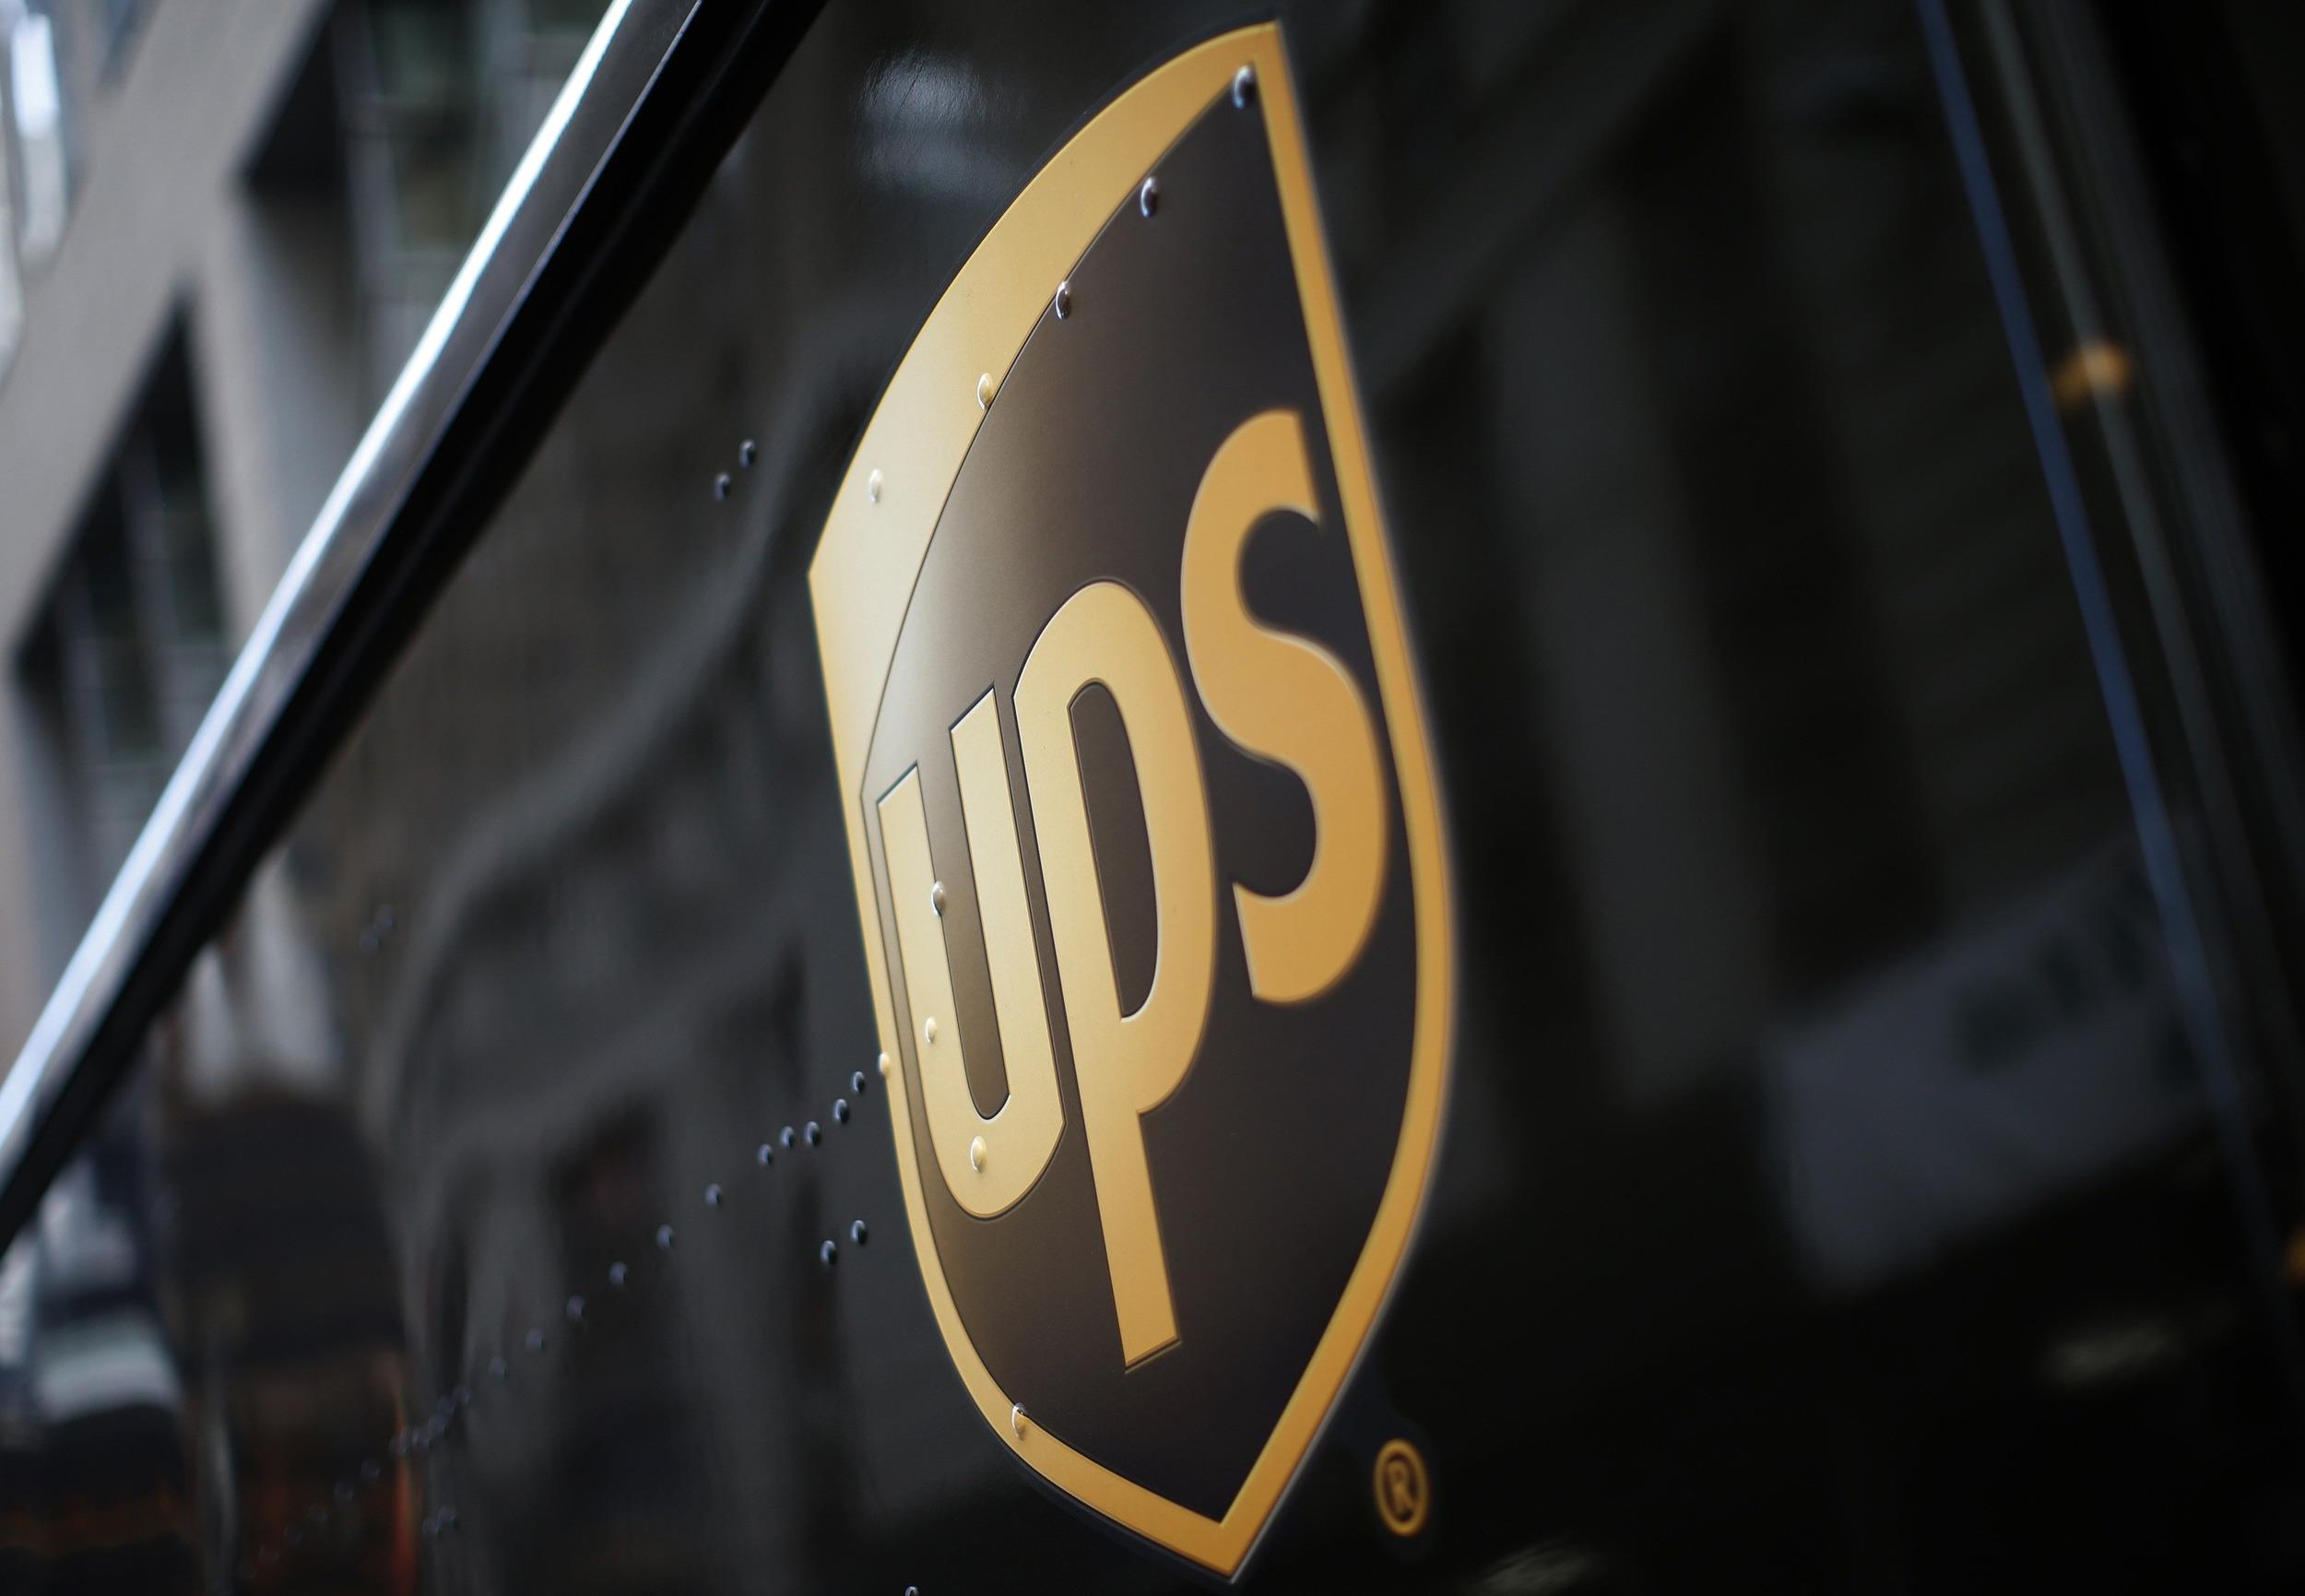 The world's largest packaging company, UPS, is looking to offset rising fuel costs by charging by size for ground packages.